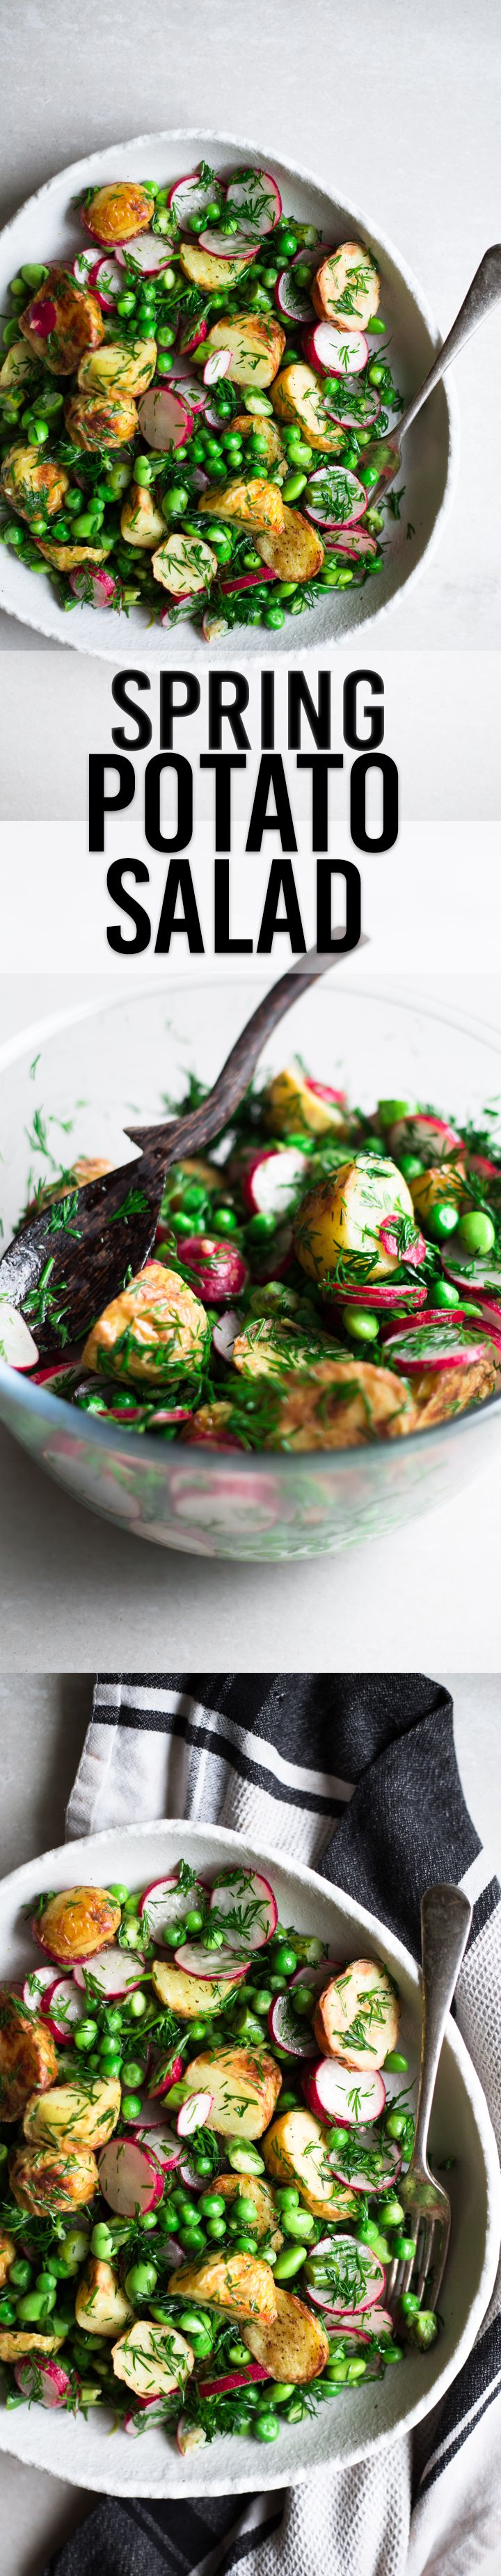 Vegan Spring Potato Salad - Roasted Potatoes, Radish, Asaparagus, Edamame and Green Peas dressed in a Tangy Dressing and Dill. #healthy #glutenfree #vegan #salad #potatosalad